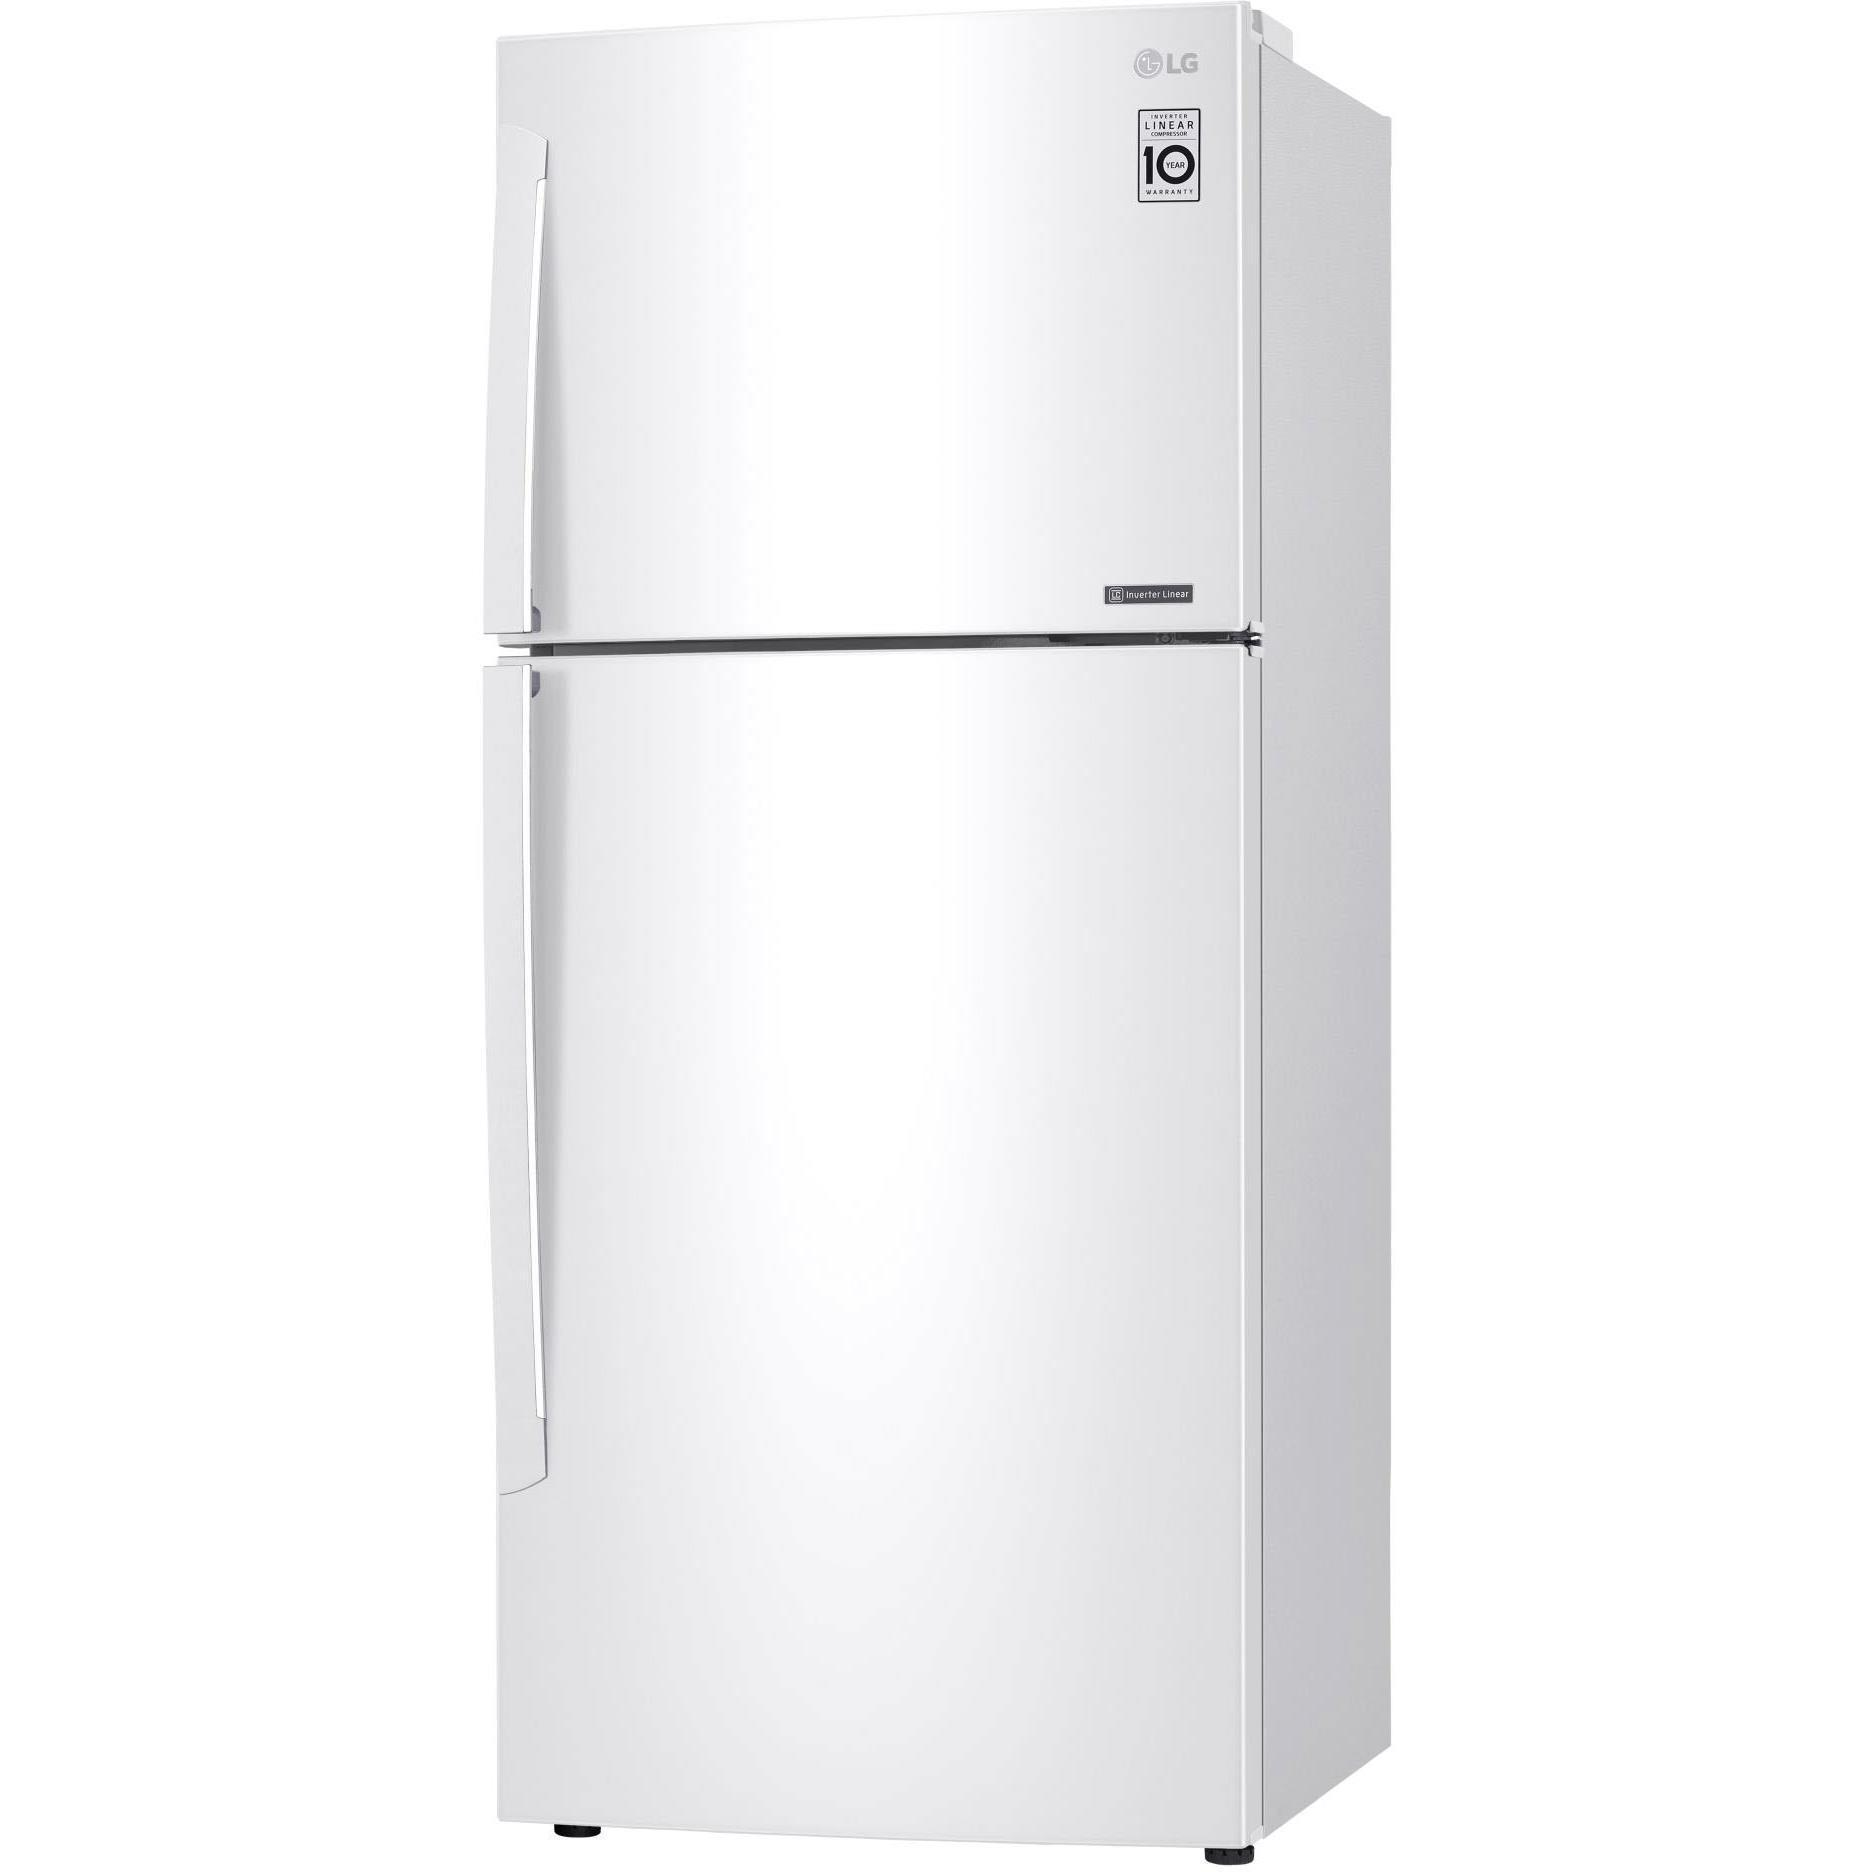 LG GT442WDC 441L Top Mount Fridge